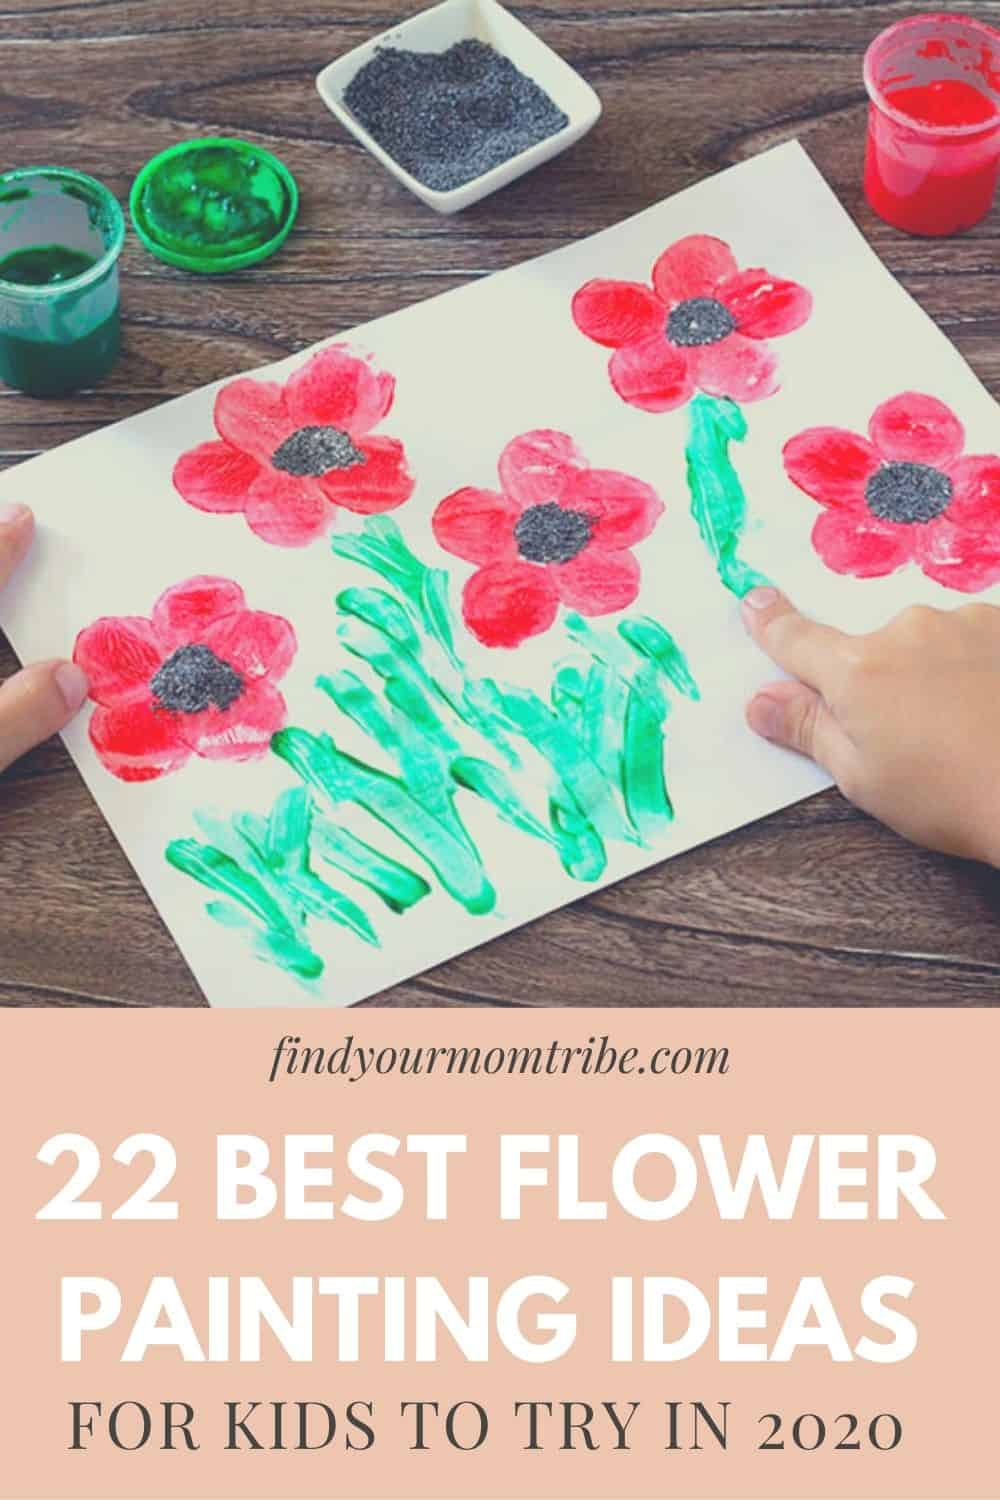 22 Best Flower Painting Ideas For Kids To Try In 2020